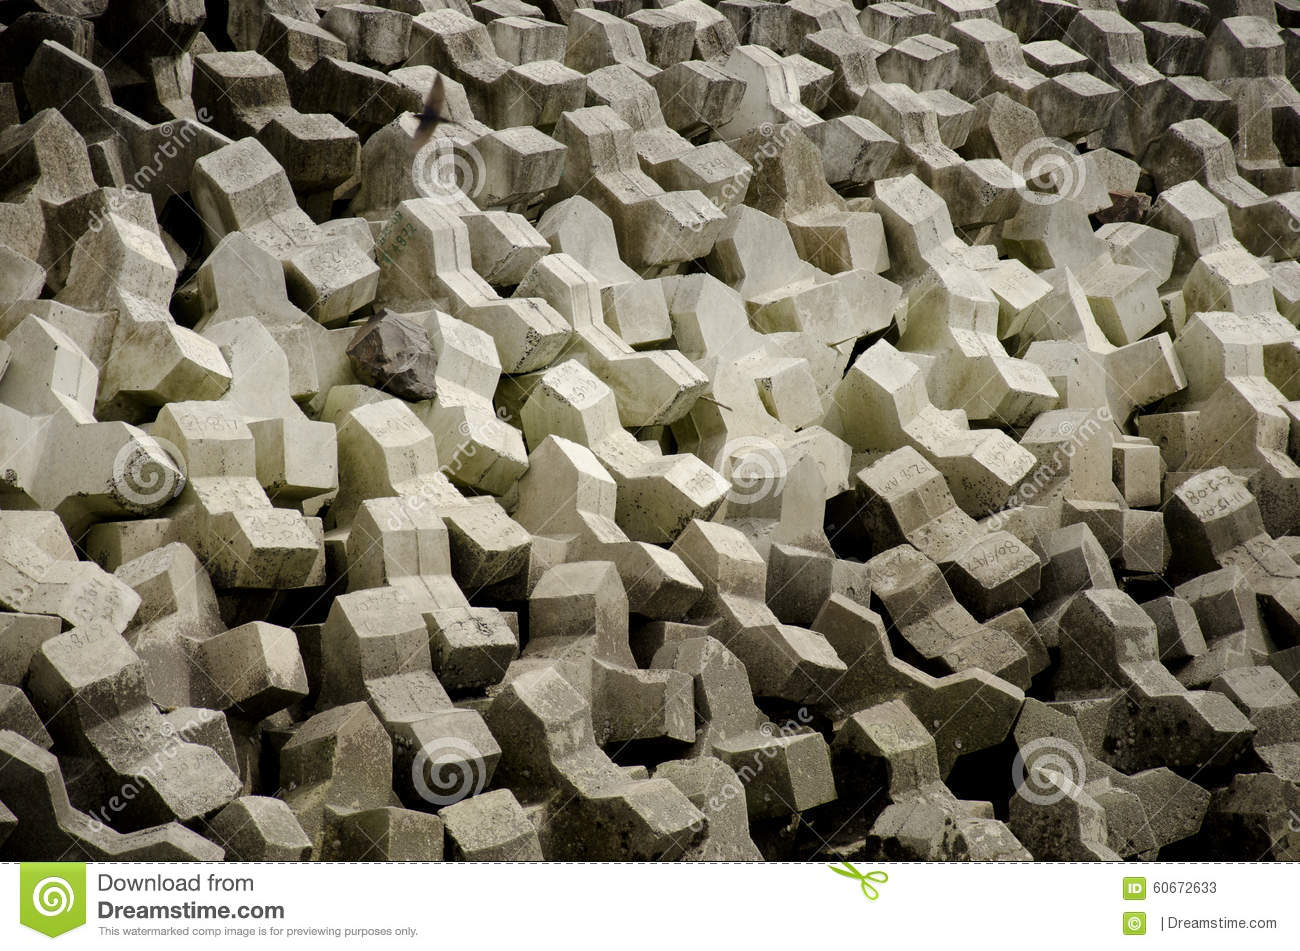 Concrete Blocks Sea Wall Stock Photo - Image: 60672633